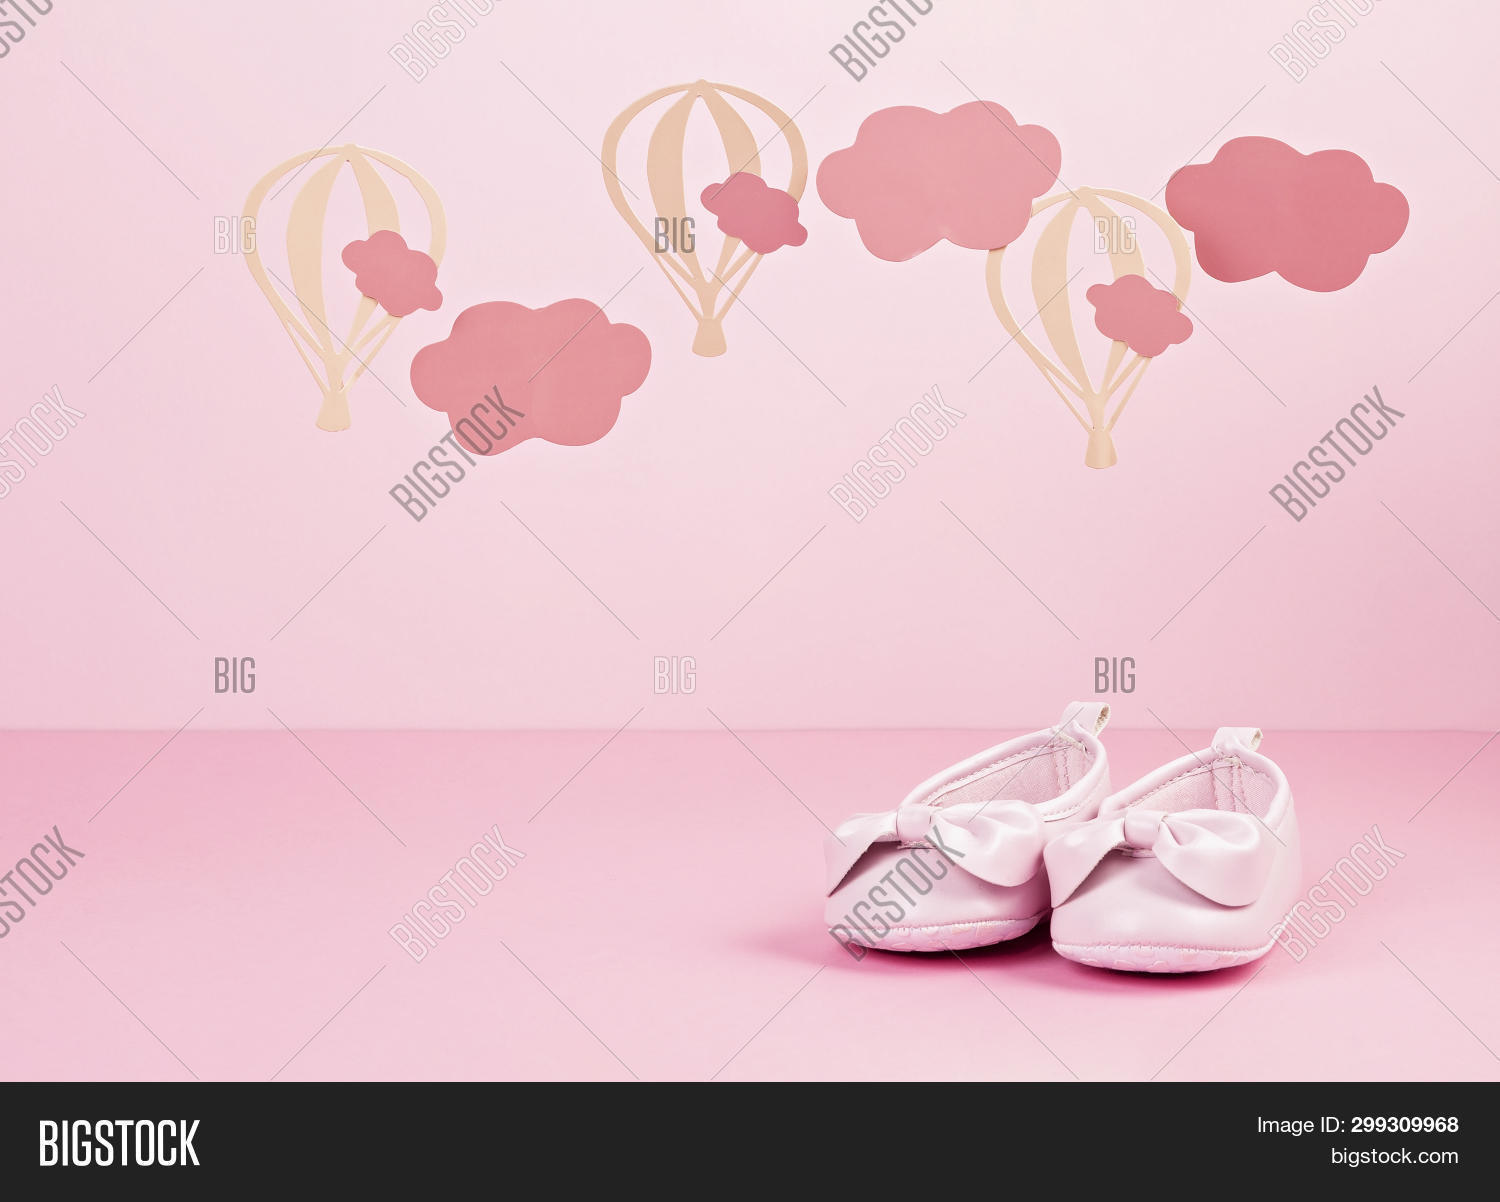 Baby Girl Cute Pink Image Photo Free Trial Bigstock